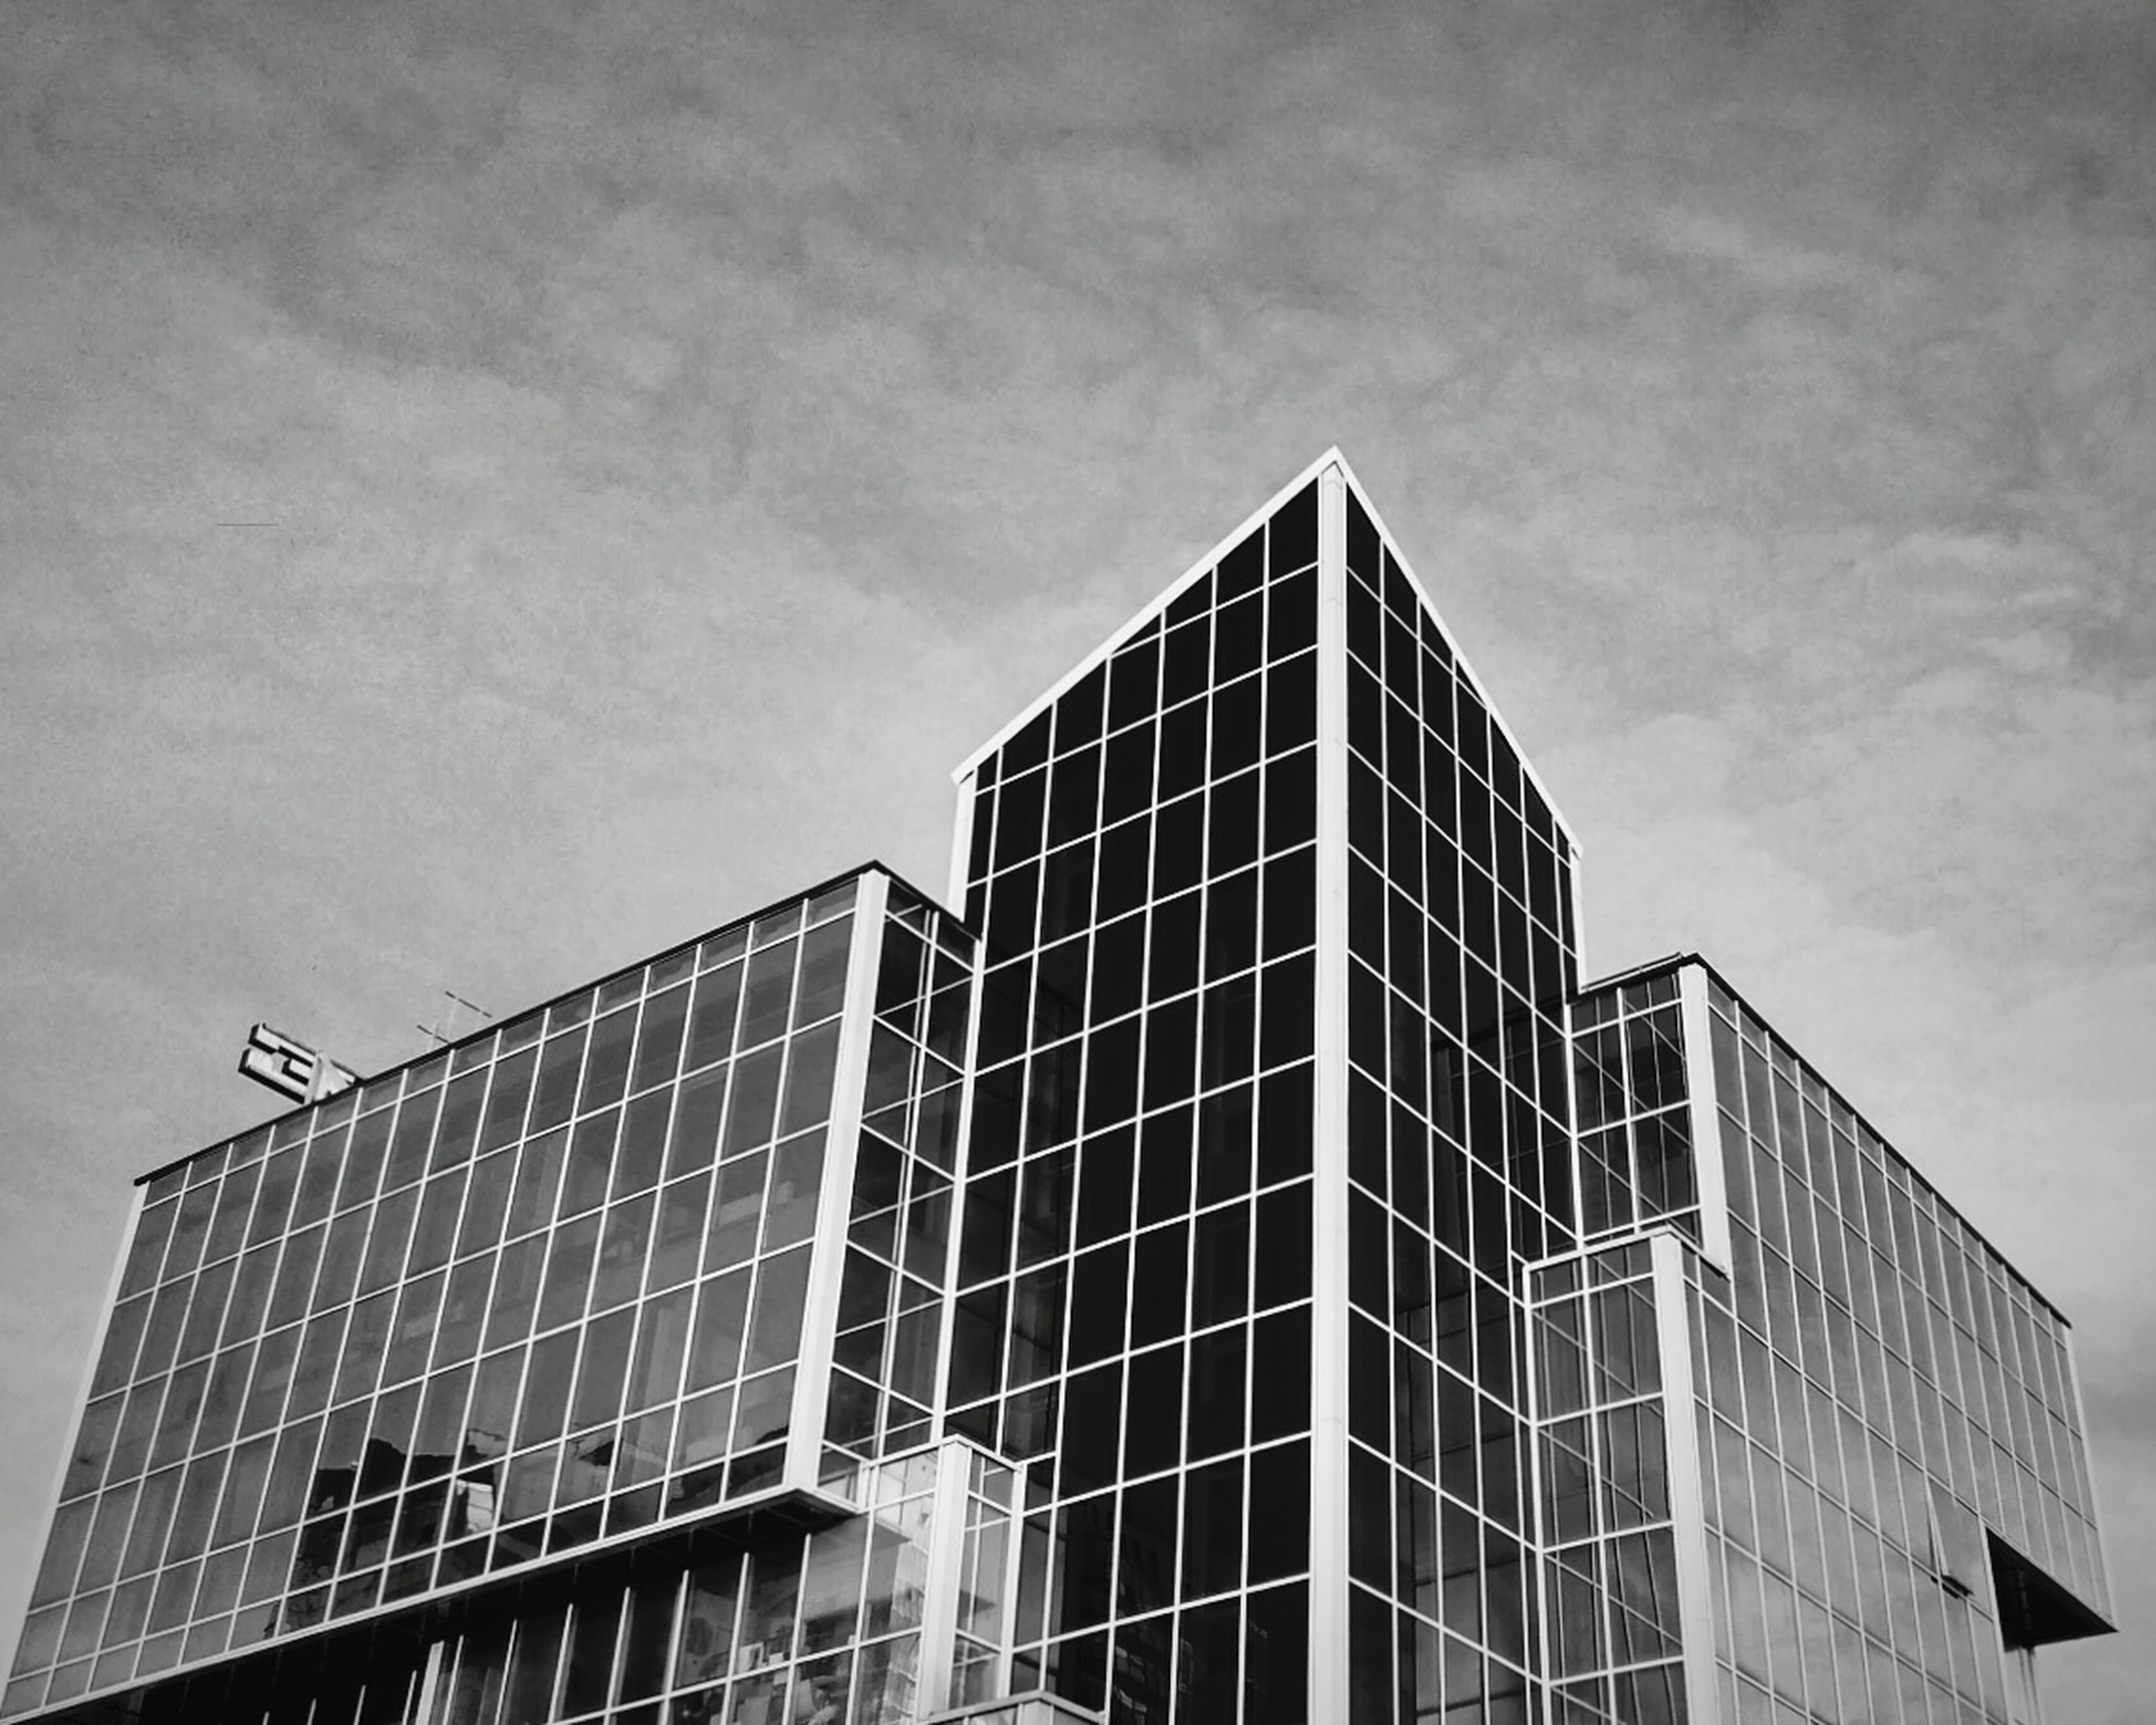 architecture, built structure, low angle view, building exterior, sky, building, modern, office building, city, window, cloud - sky, tall - high, day, outdoors, no people, glass - material, tower, skyscraper, cloud, cloudy